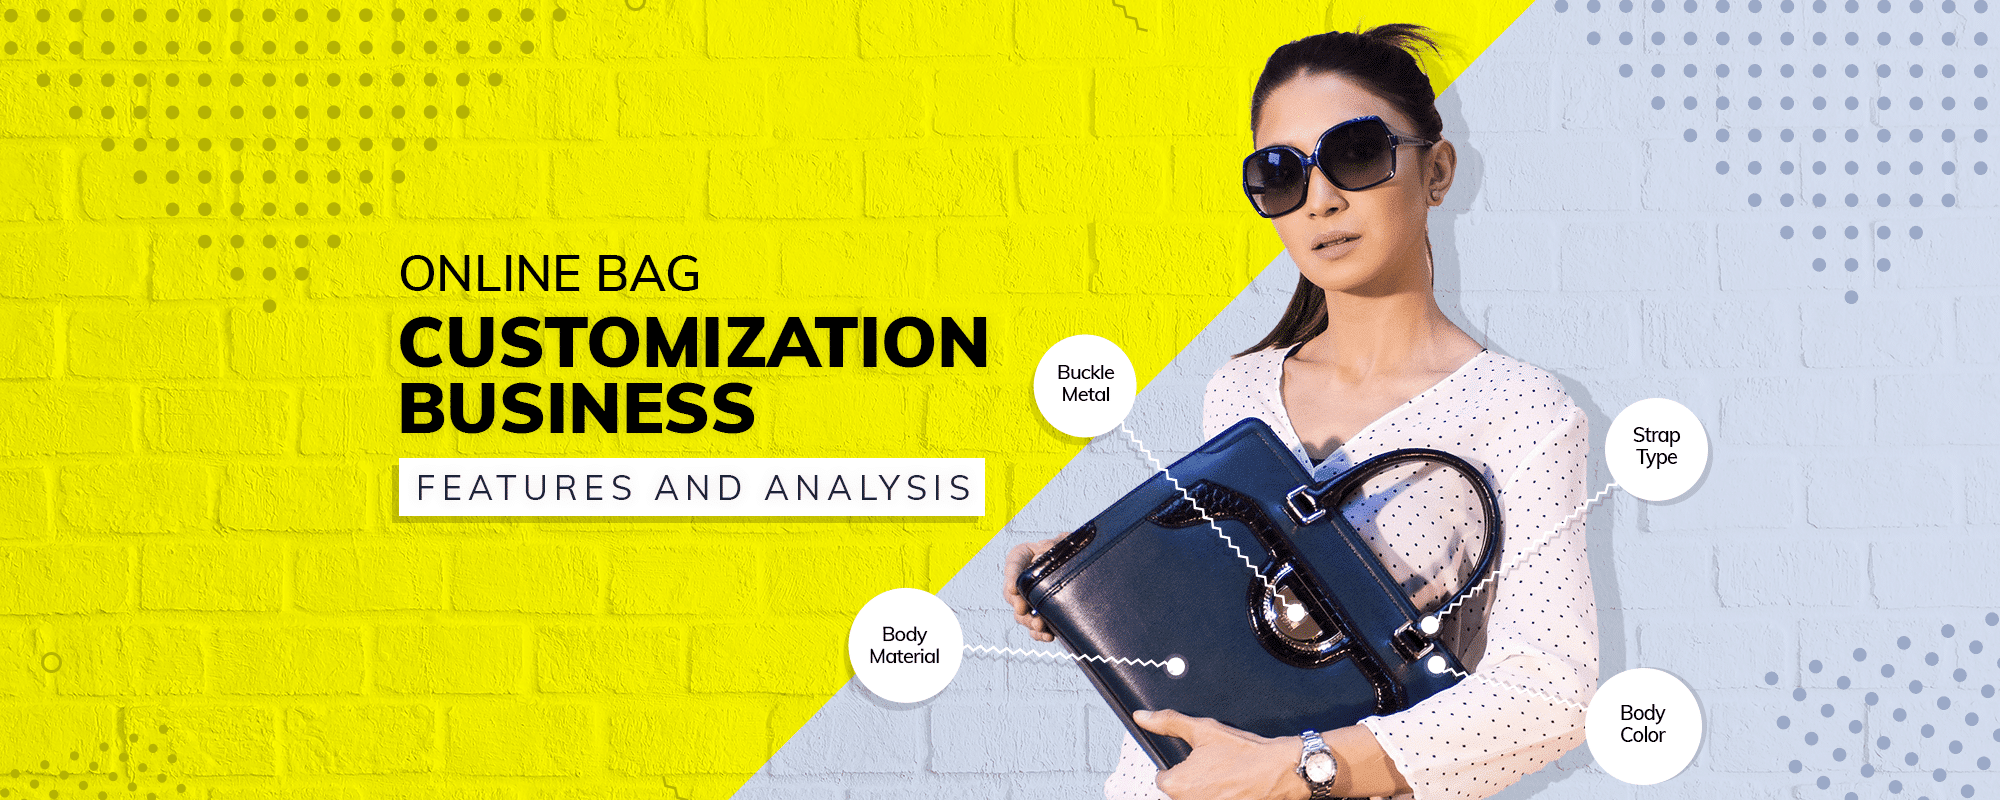 Business Analysis and Critical Features of Custom Bag Websites